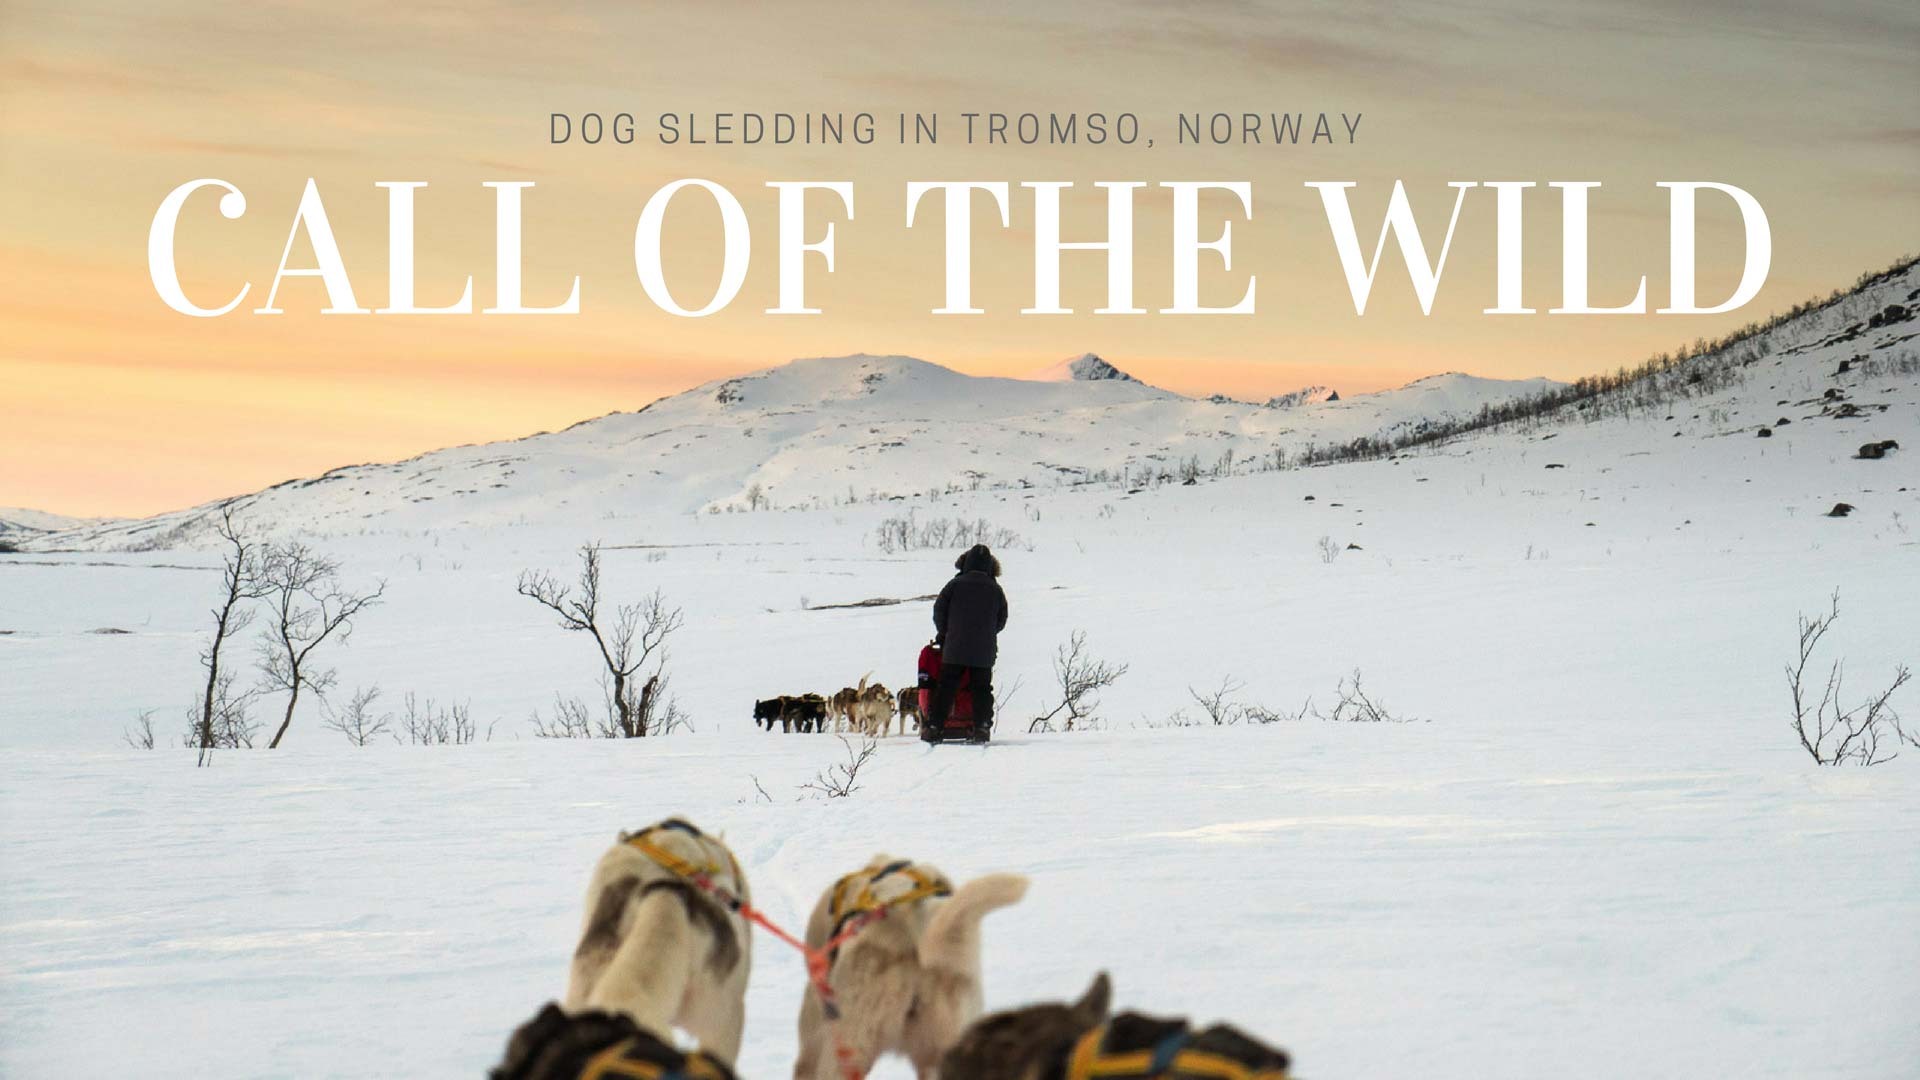 Call Of The Wild – Dog Sledding in Tromso, Norway